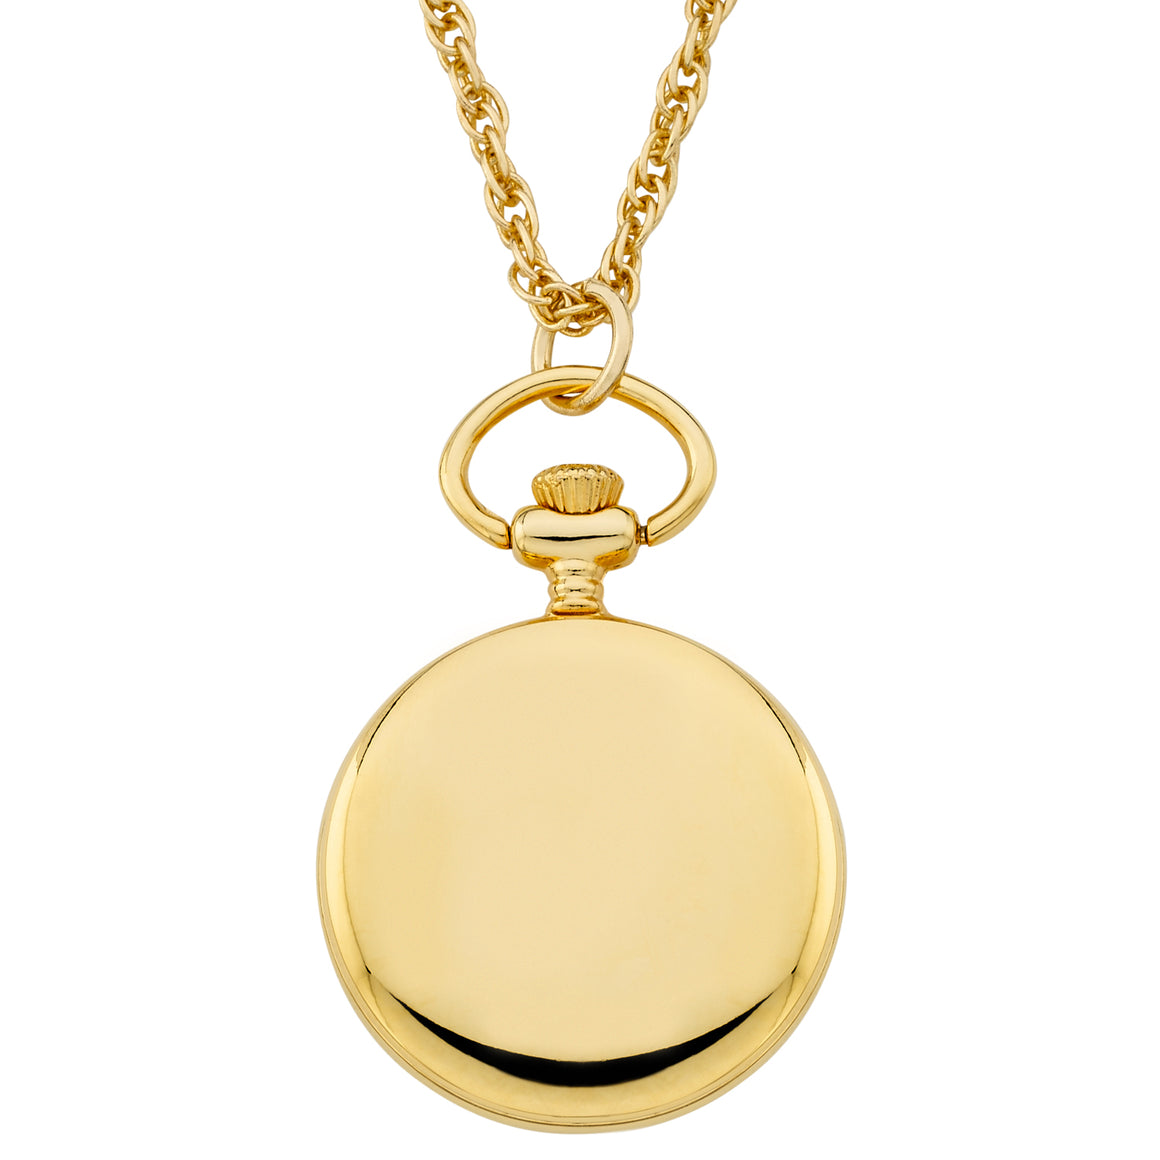 Gotham Women's Gold-Tone Open Face Pendant Watch With Chain # GWC14134GA - Gotham Watch